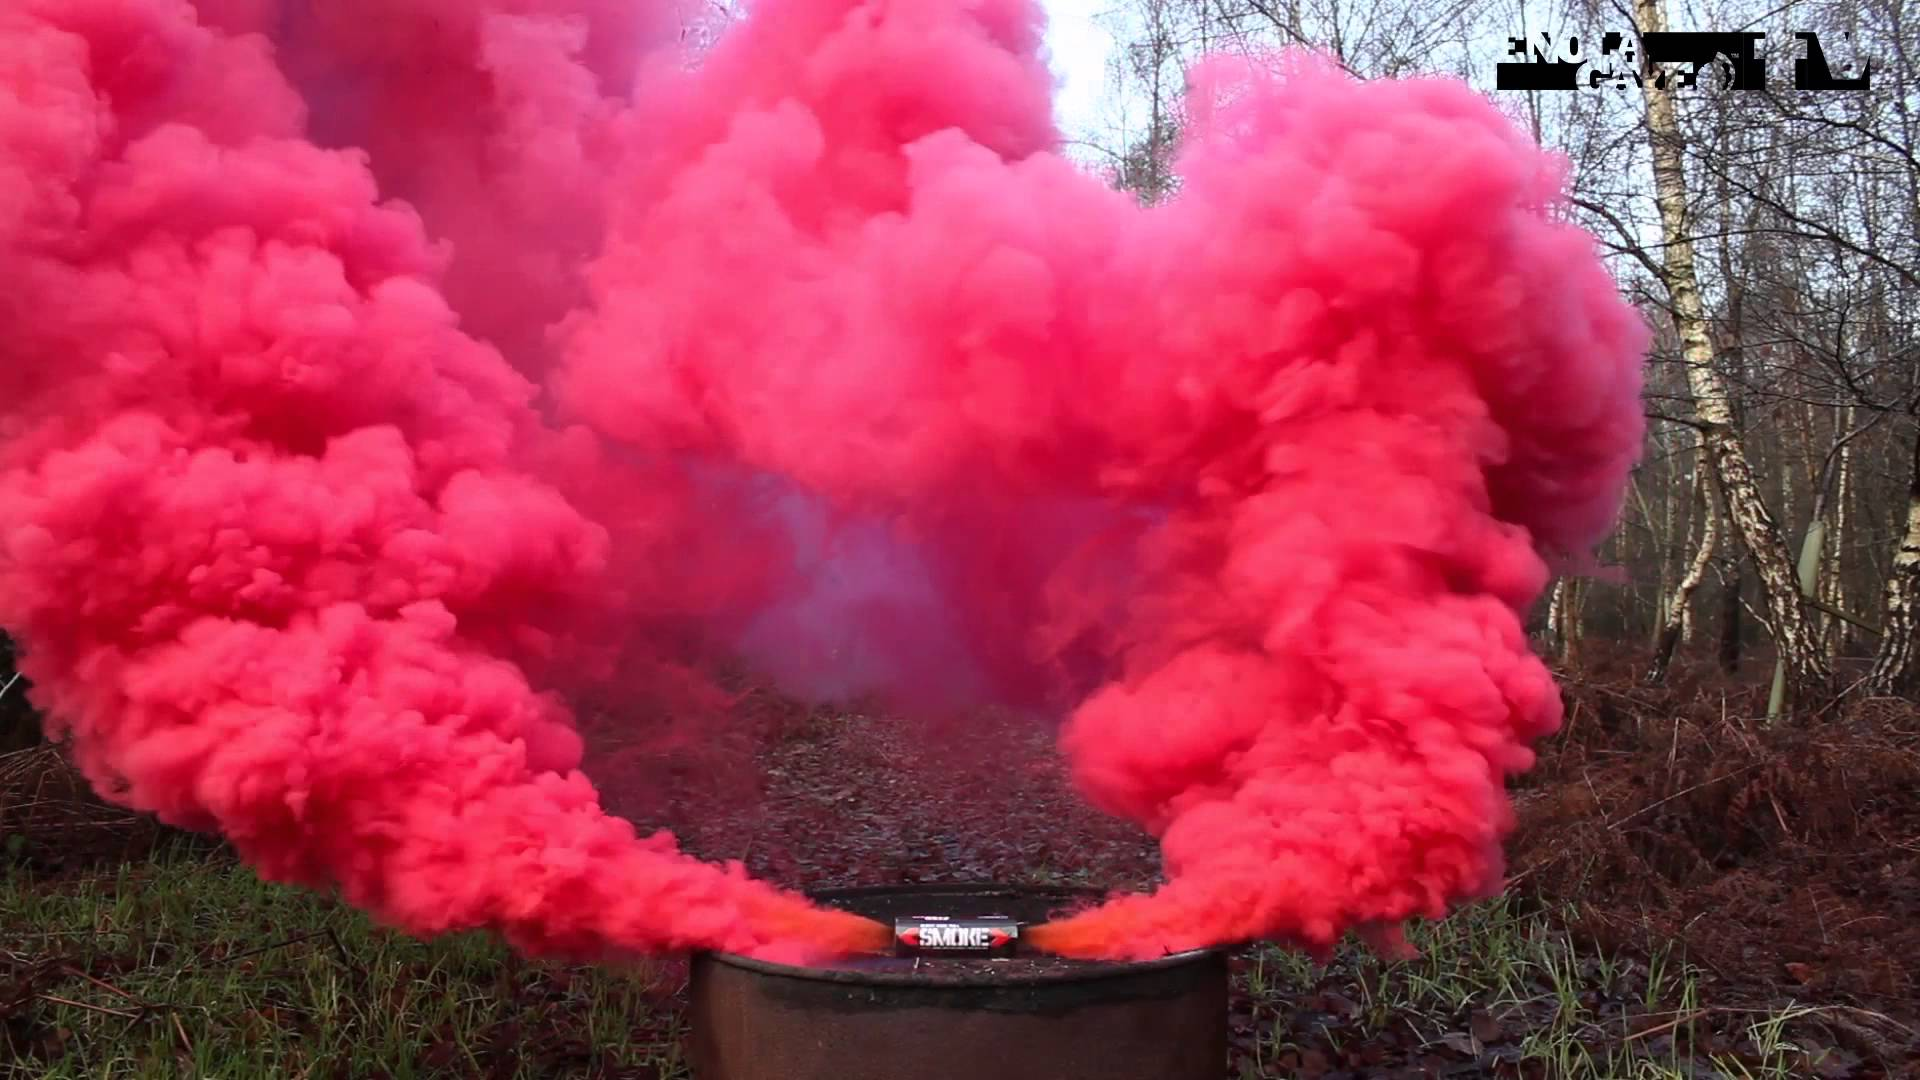 Related Keywords & Suggestions for Colorful Smoke Bombs Tumblr